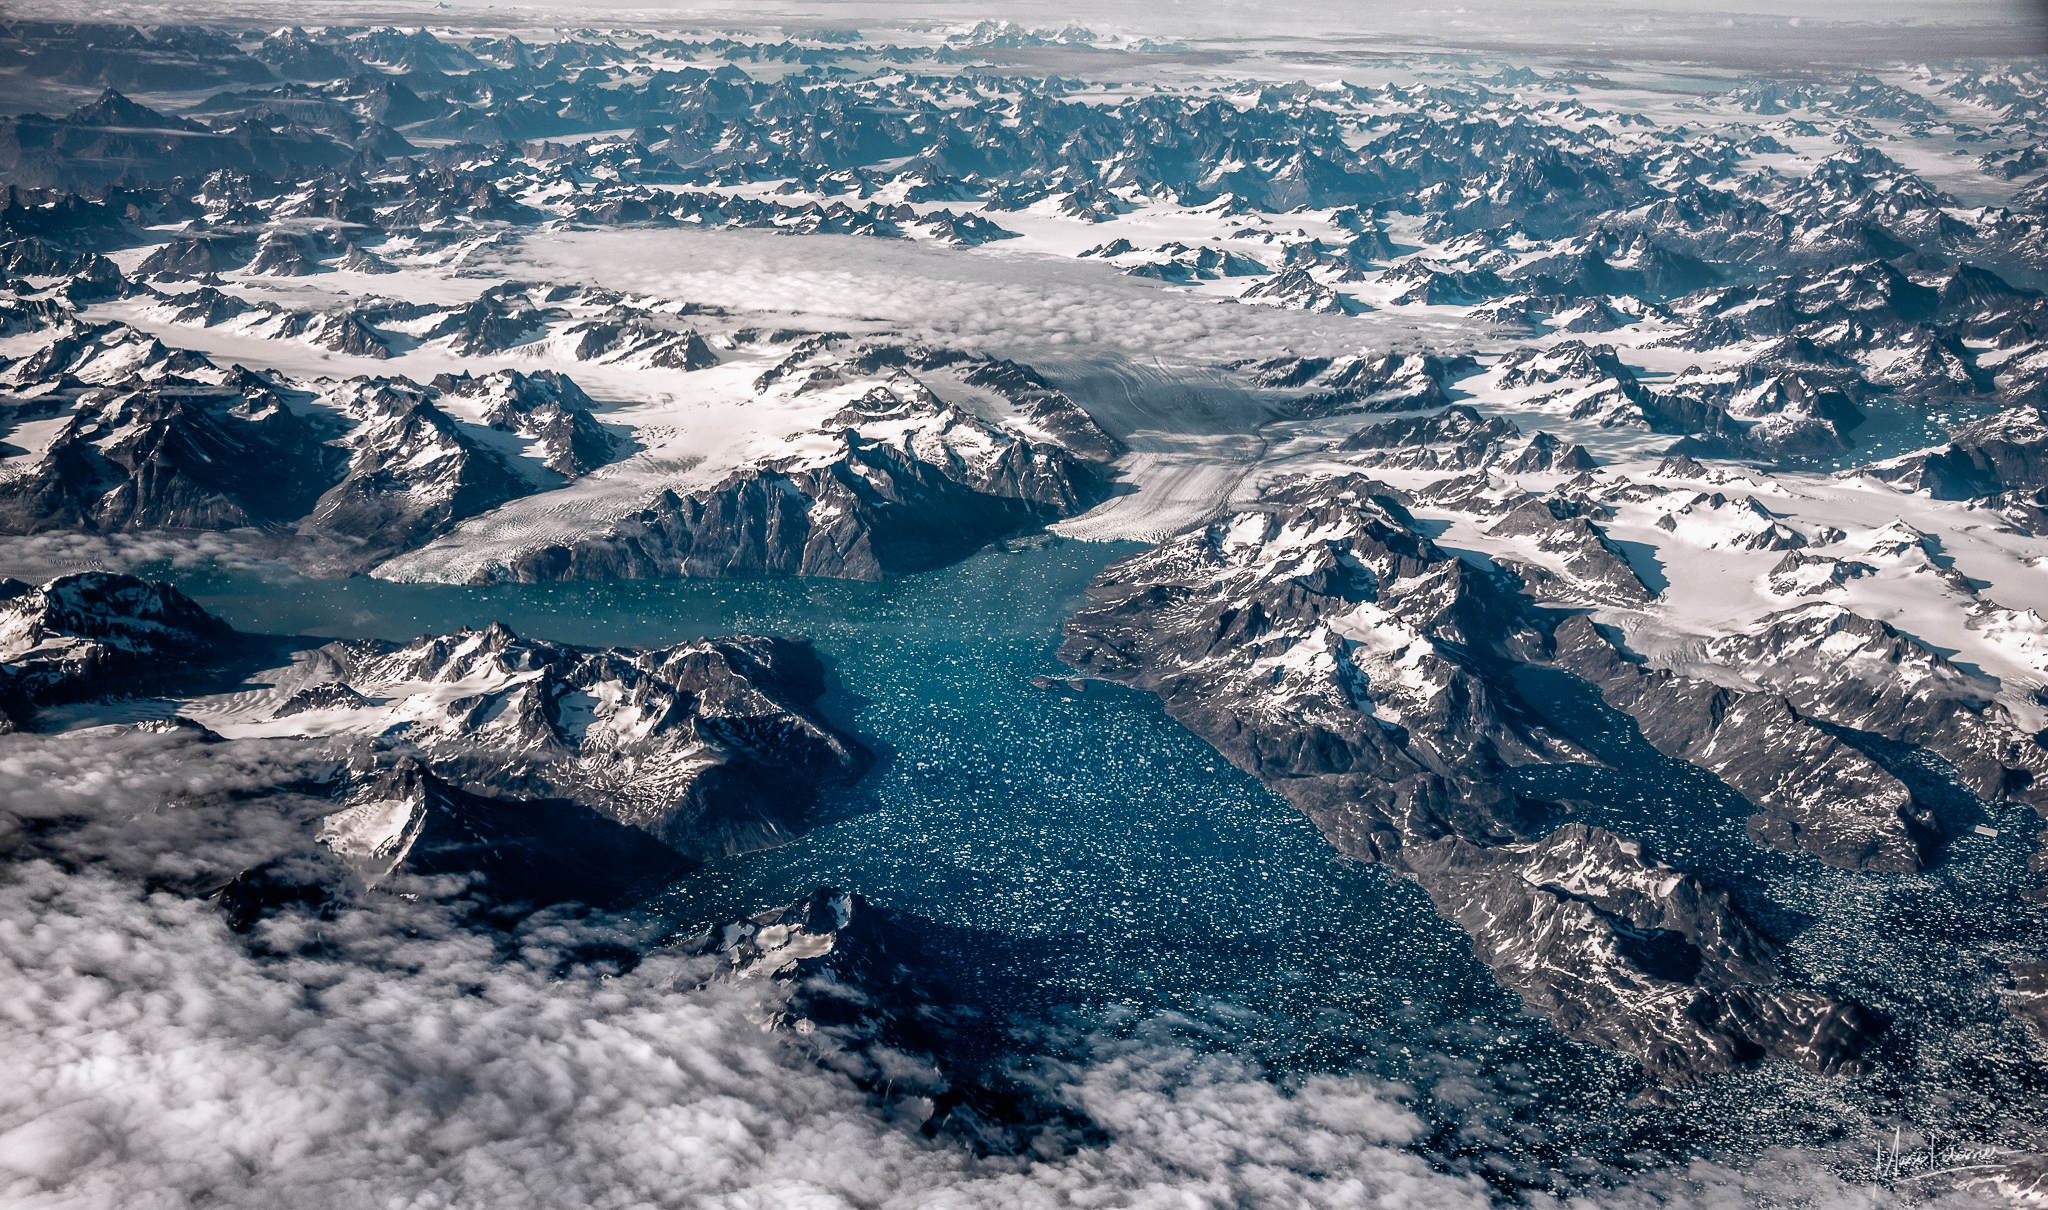 Above East greenland, Greenland